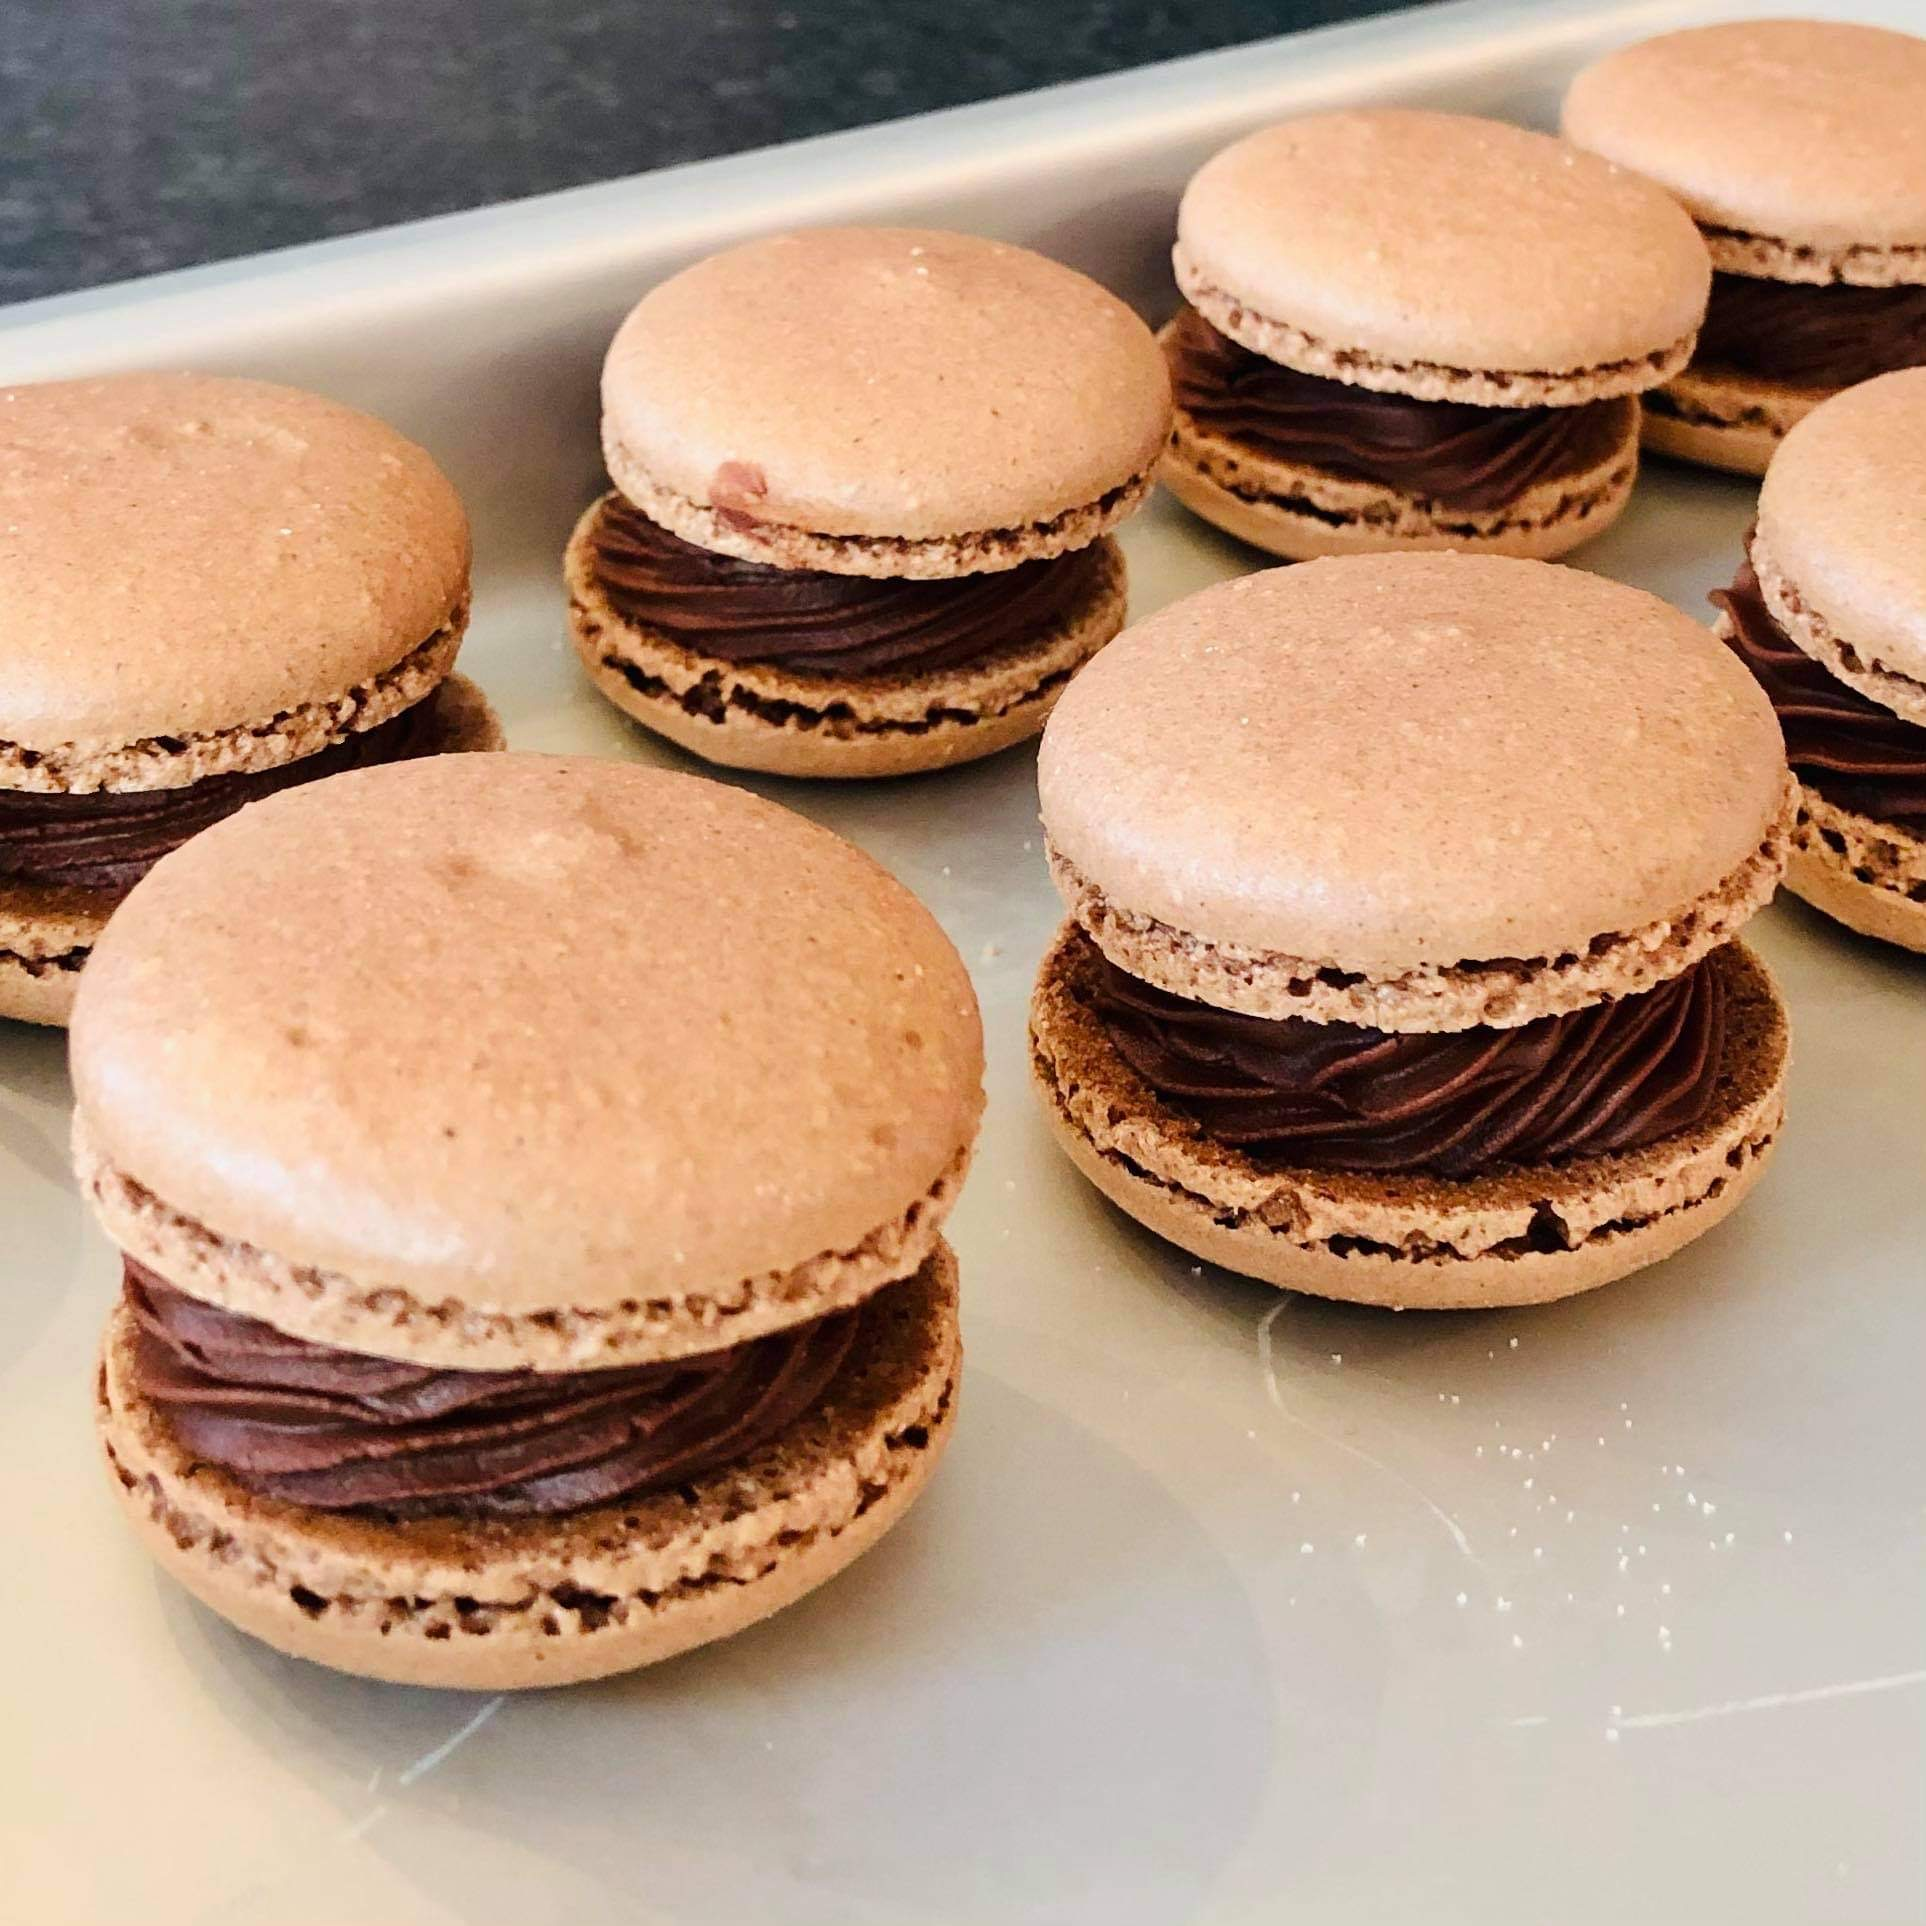 Macaron making with Lucie Bennett (Morning session)